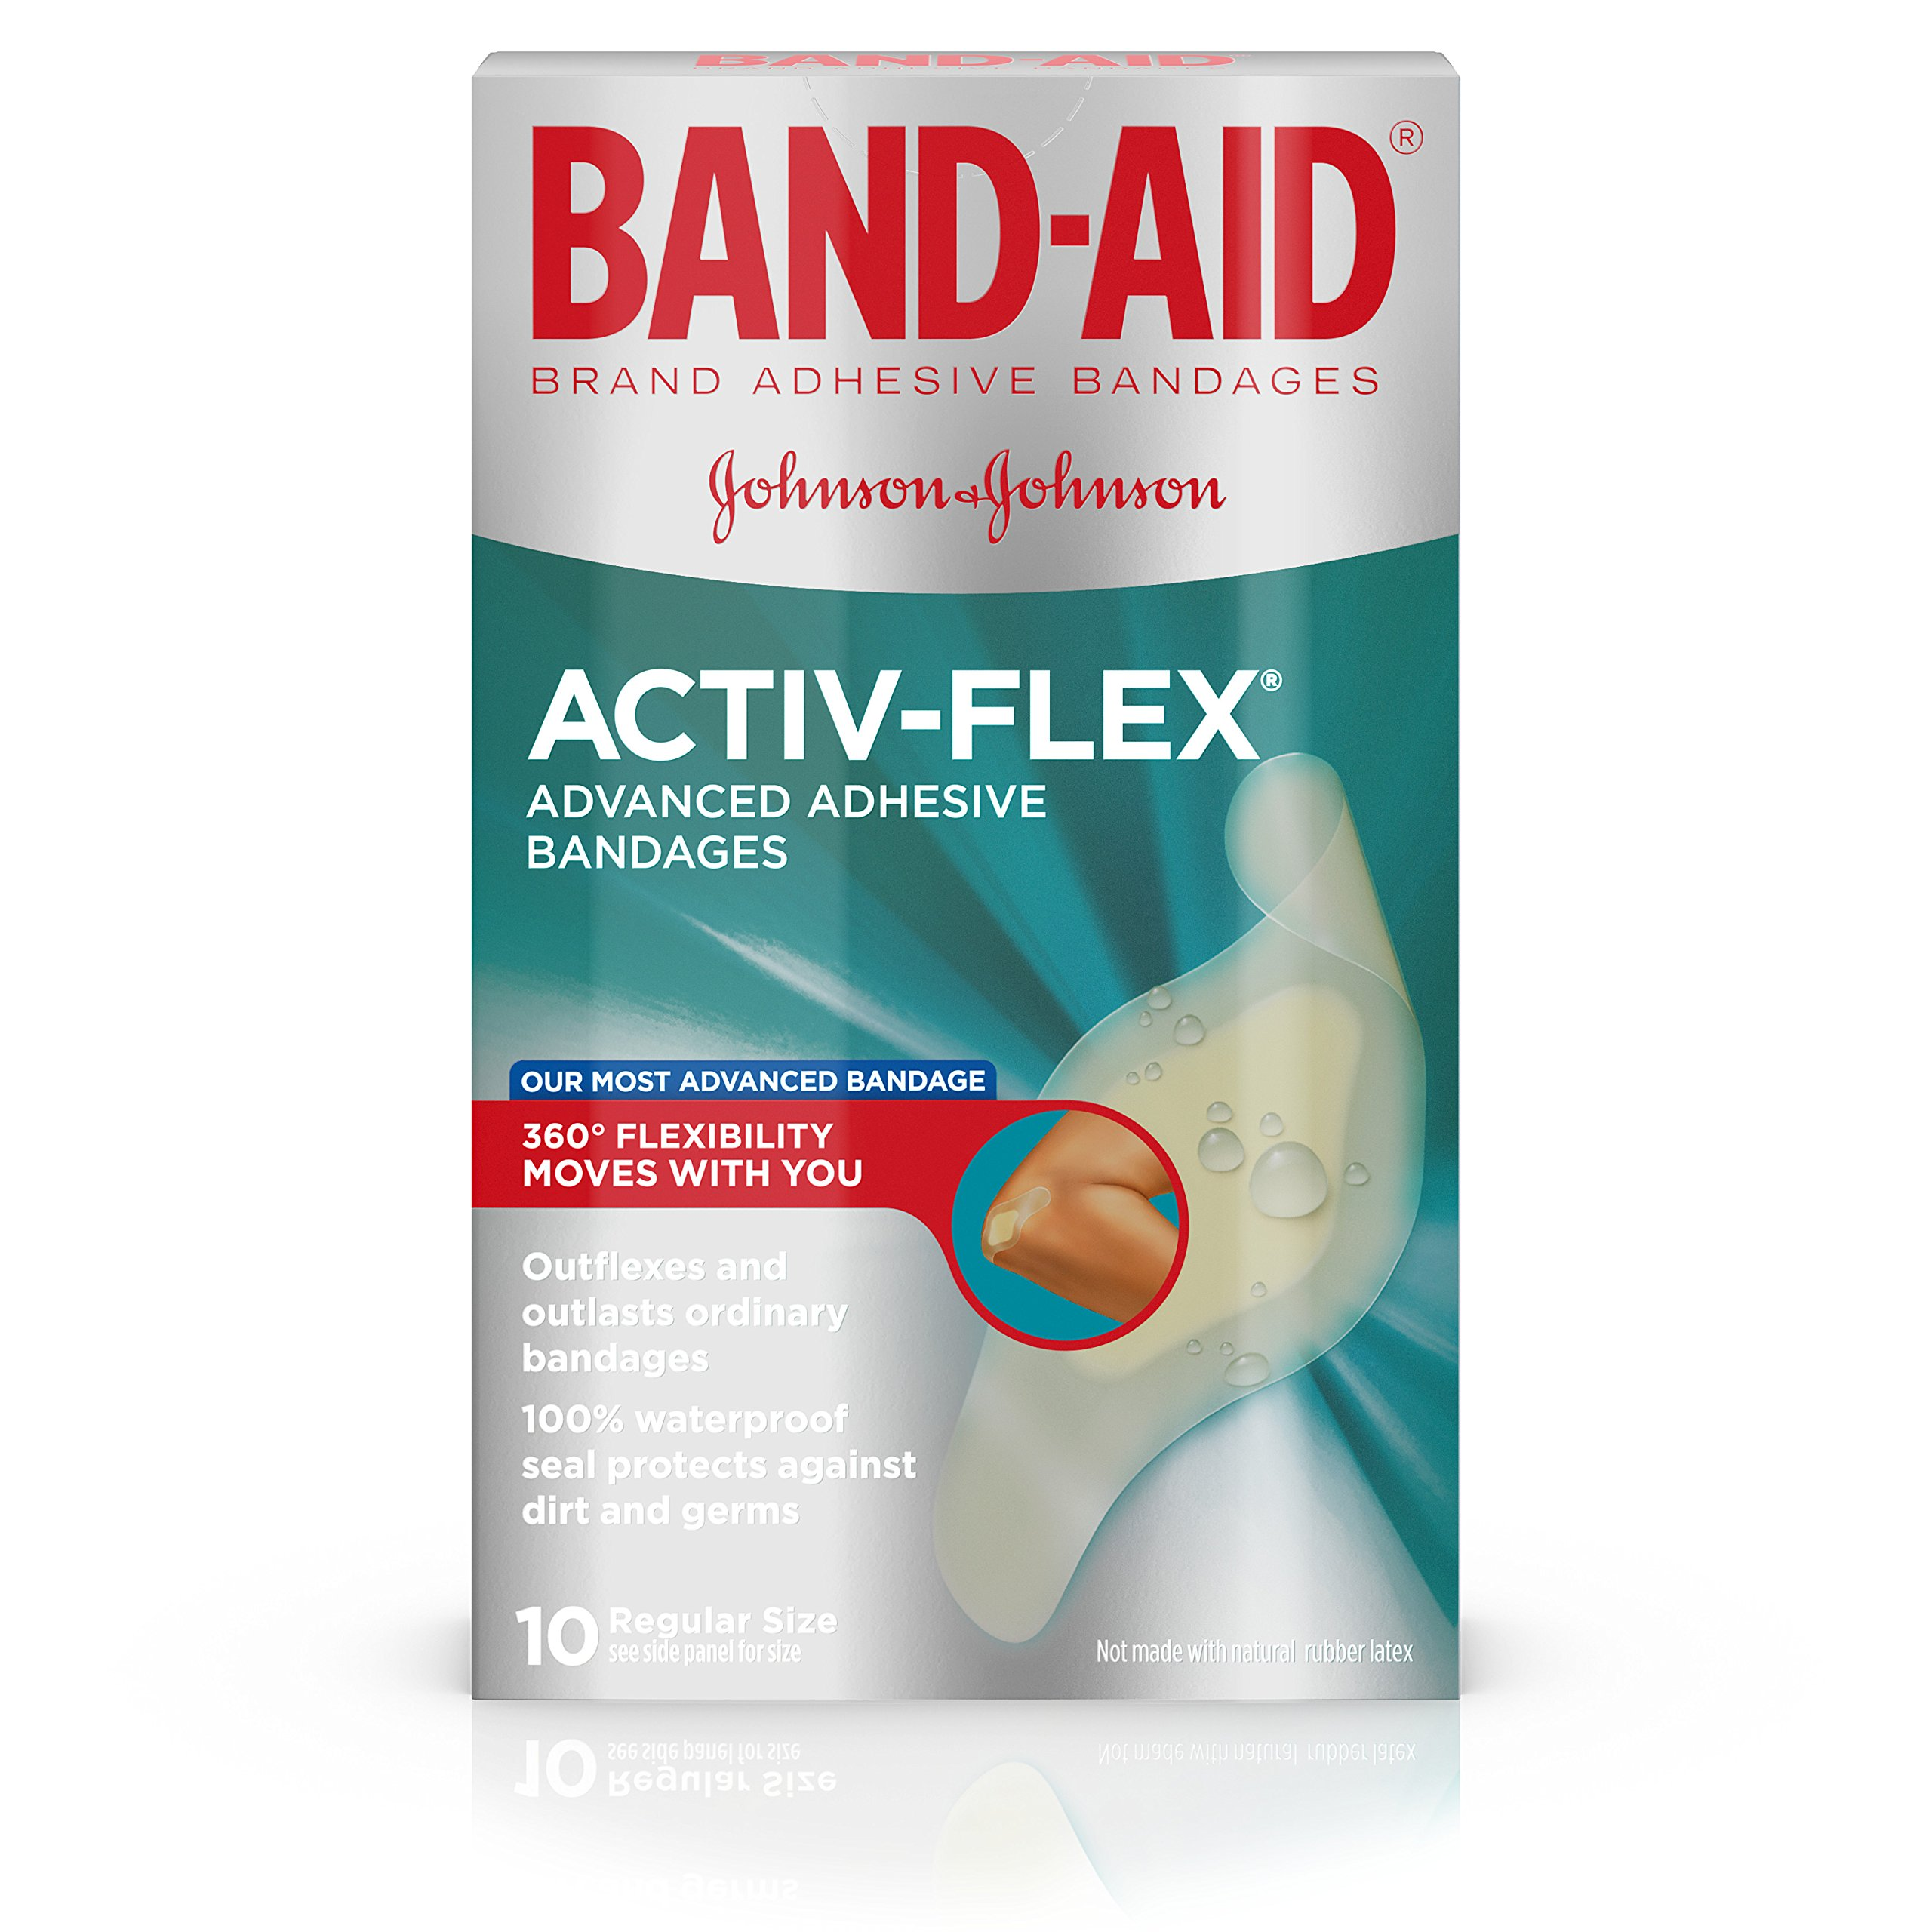 Band-aid Brand Adhesive Bandages Activ-Flex Regular, 10 Count Box, (Pack of 2)